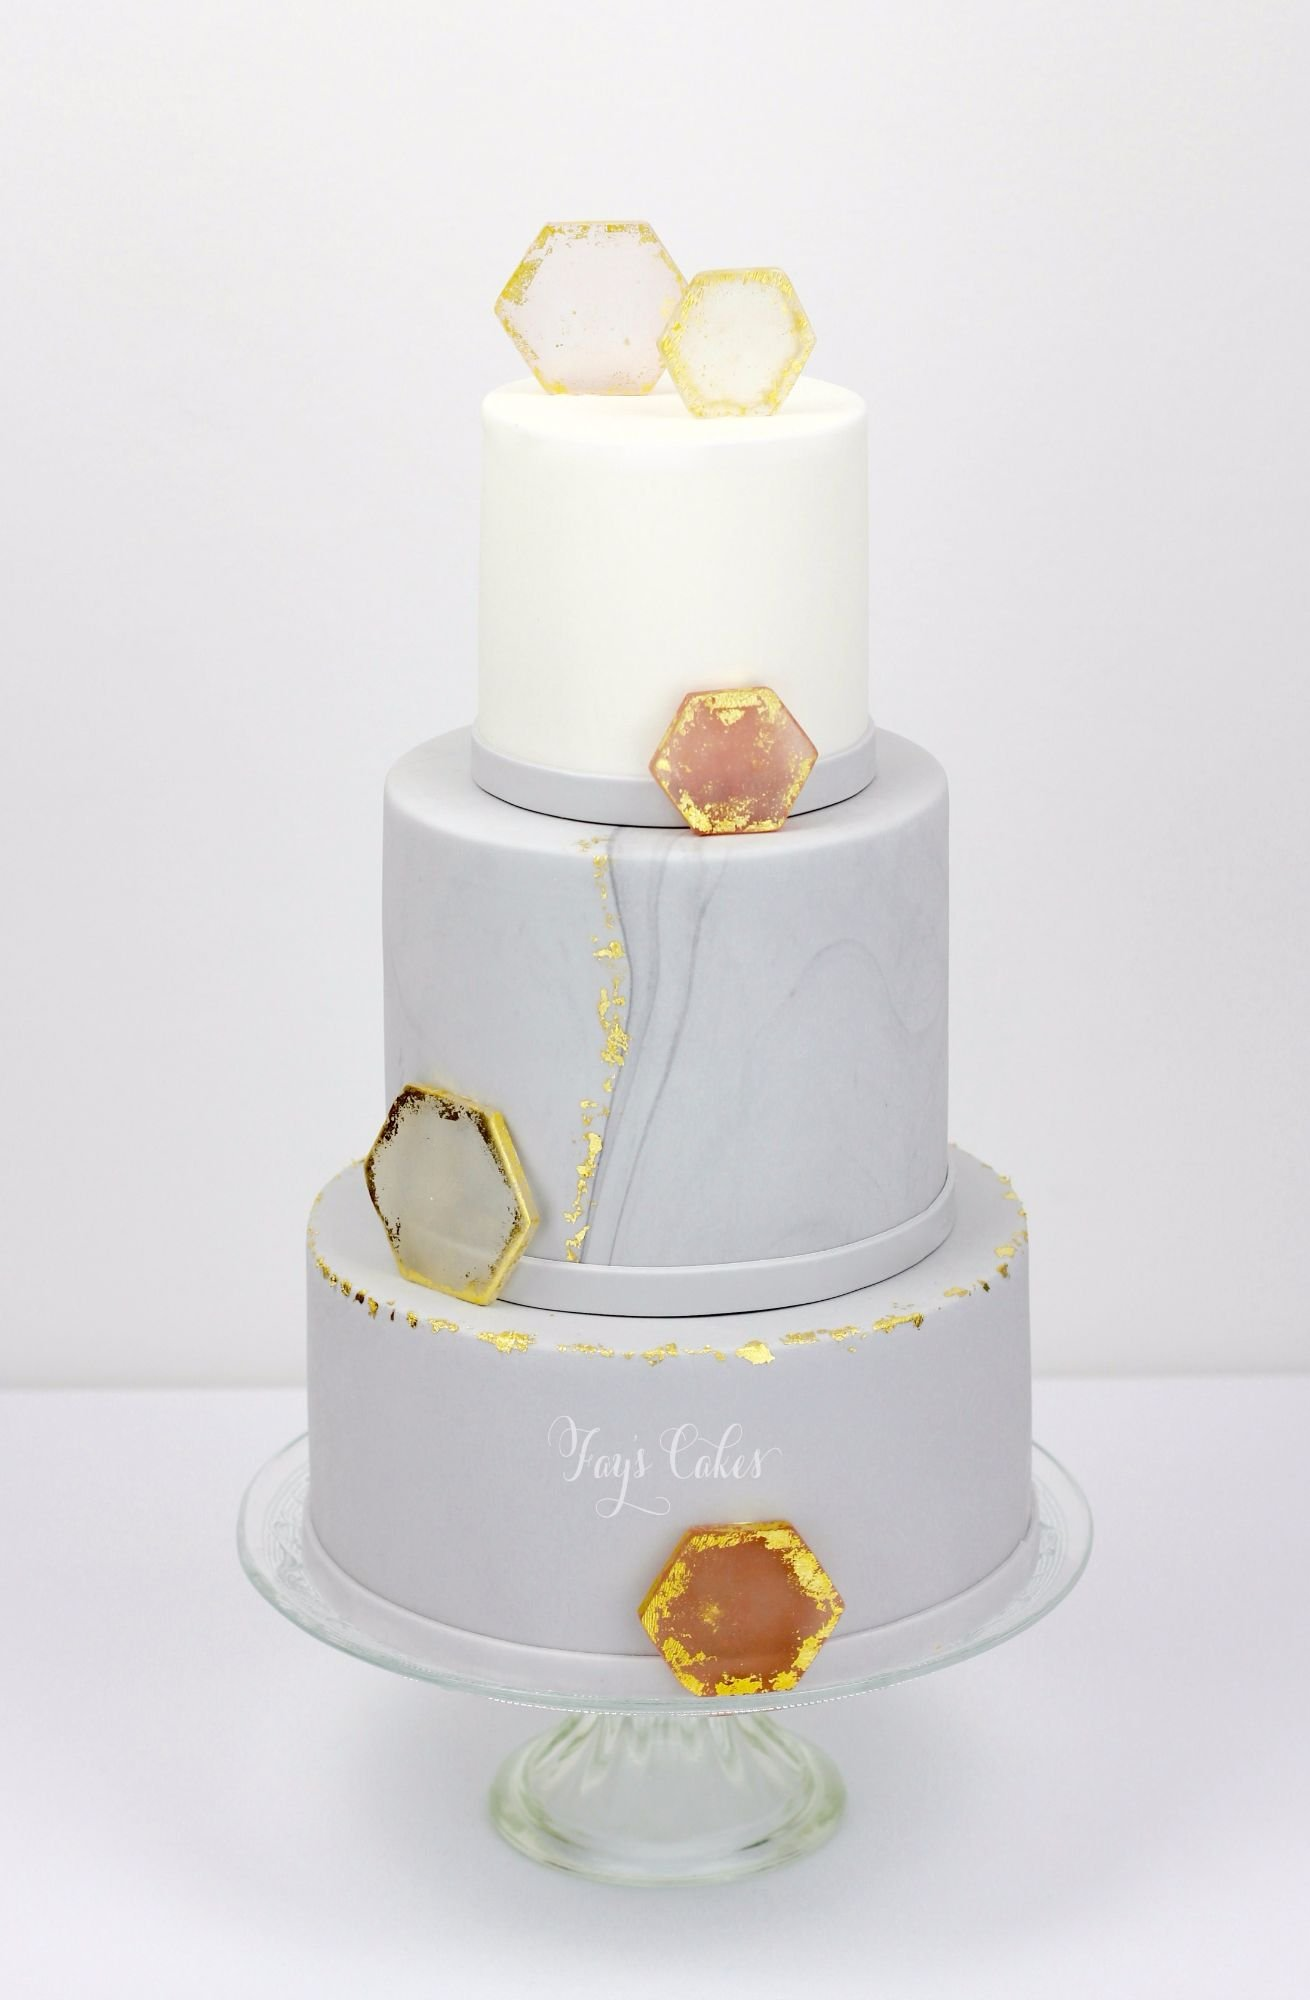 Fay S Cakes In Livingston West Lothian Creates Beautiful